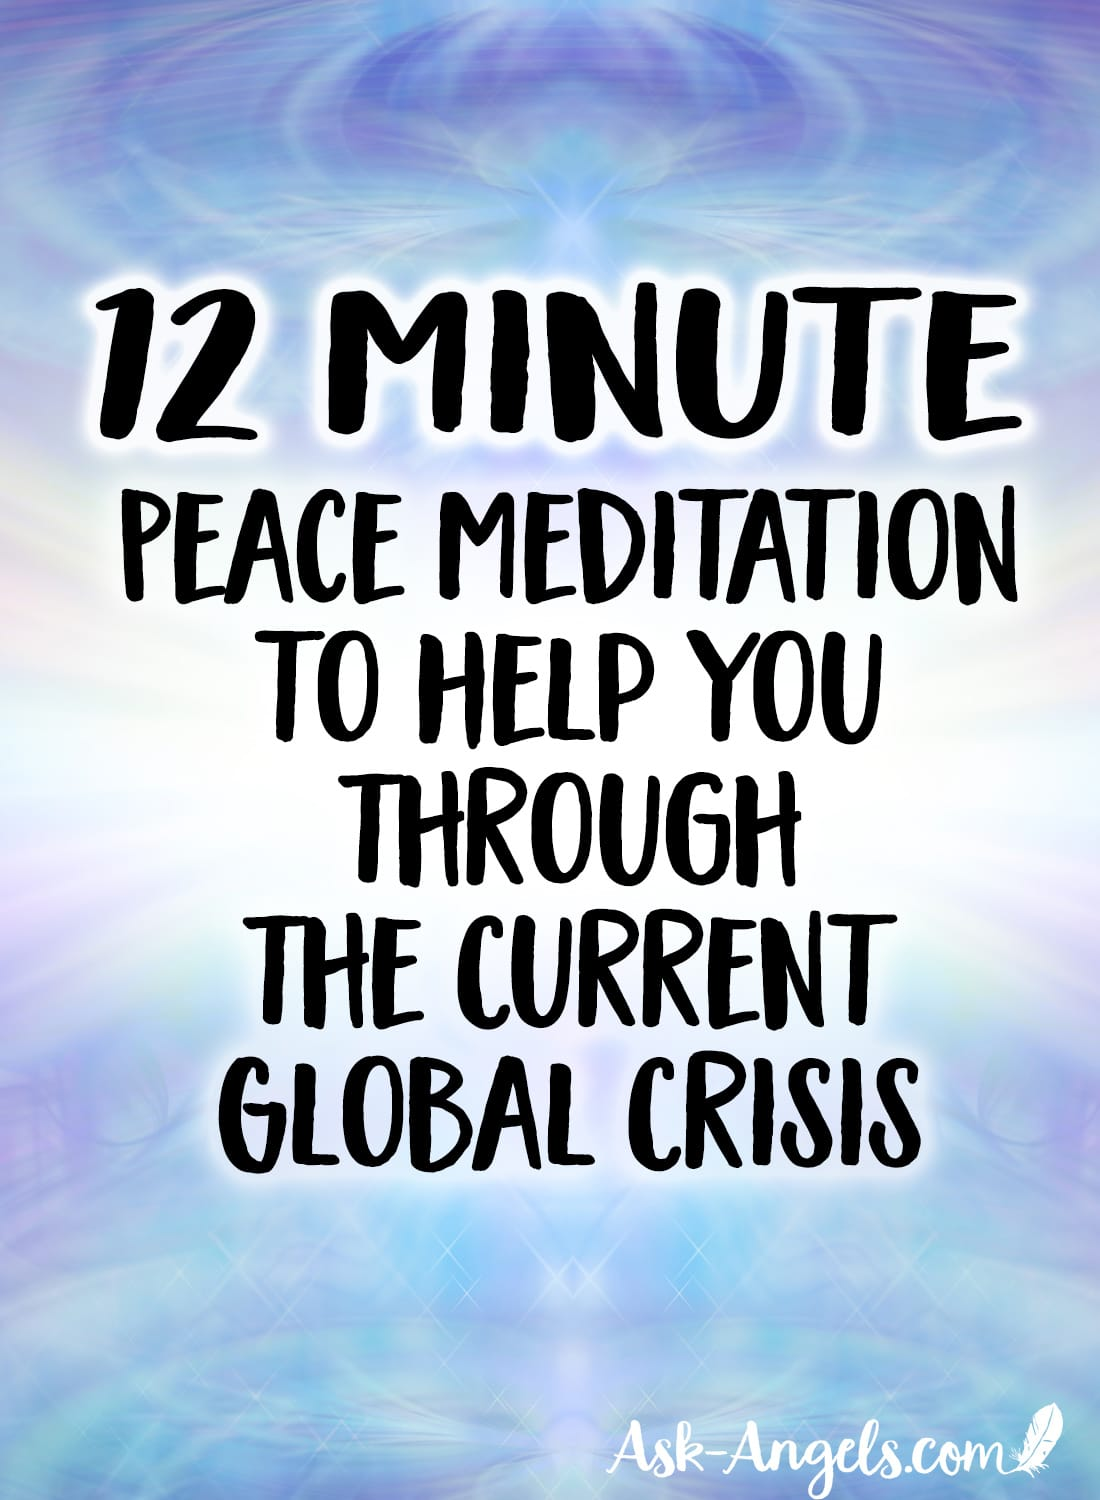 12 Minute Peace Mediation to Help You Through The Current Crisis